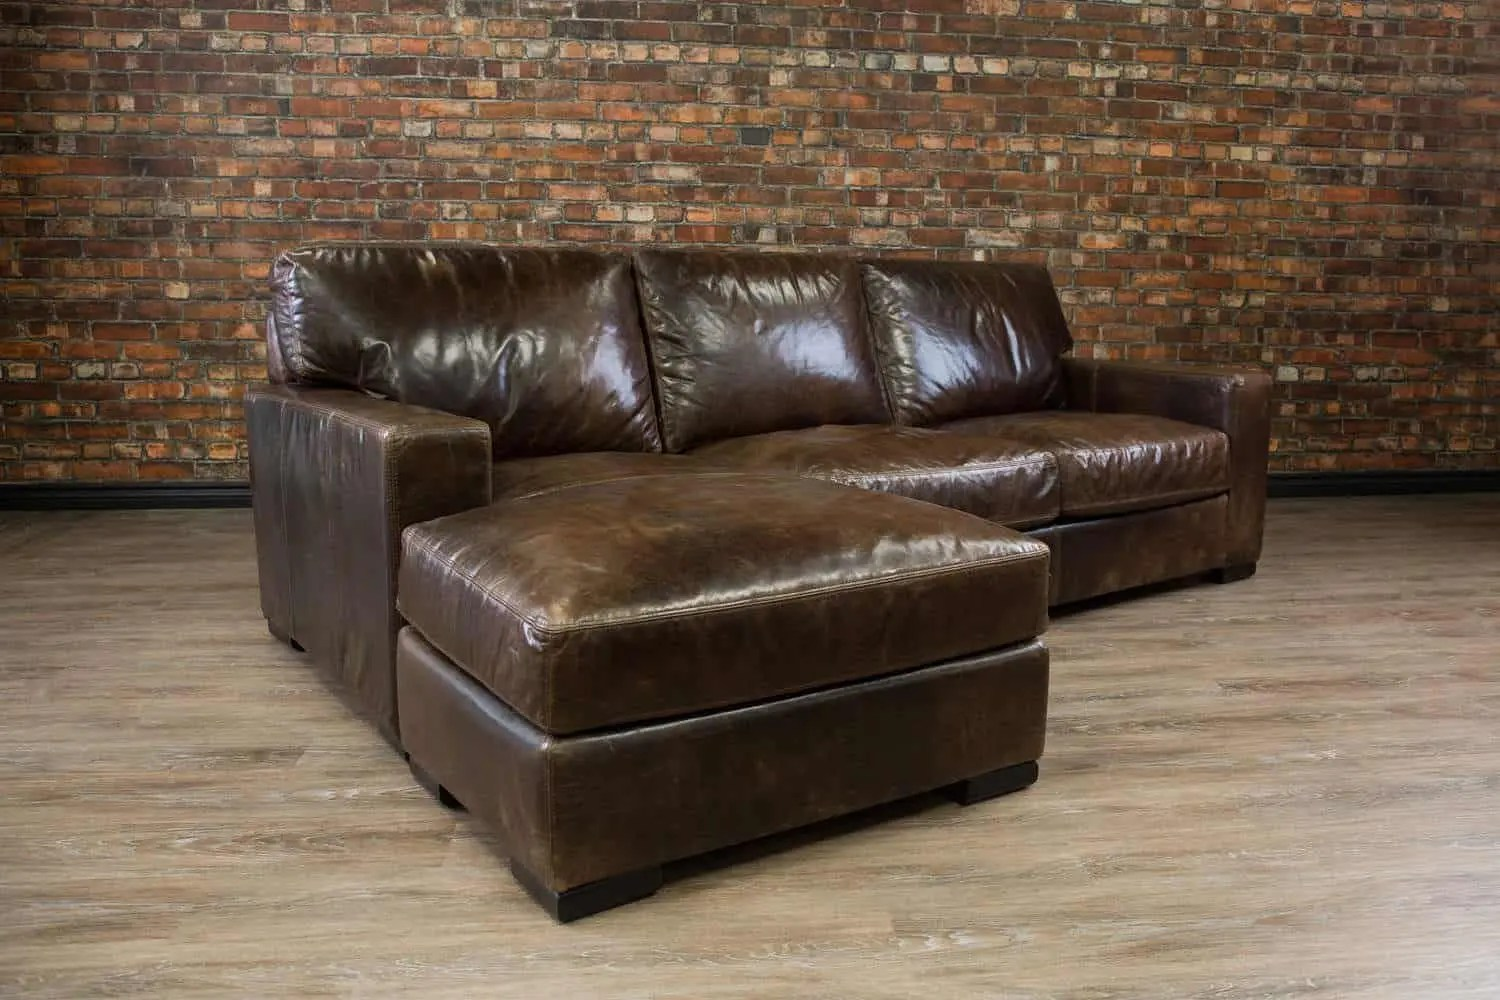 Leather Couch Canada Canadian Sofas Leather Furniture Boss Sofa Canada Bed